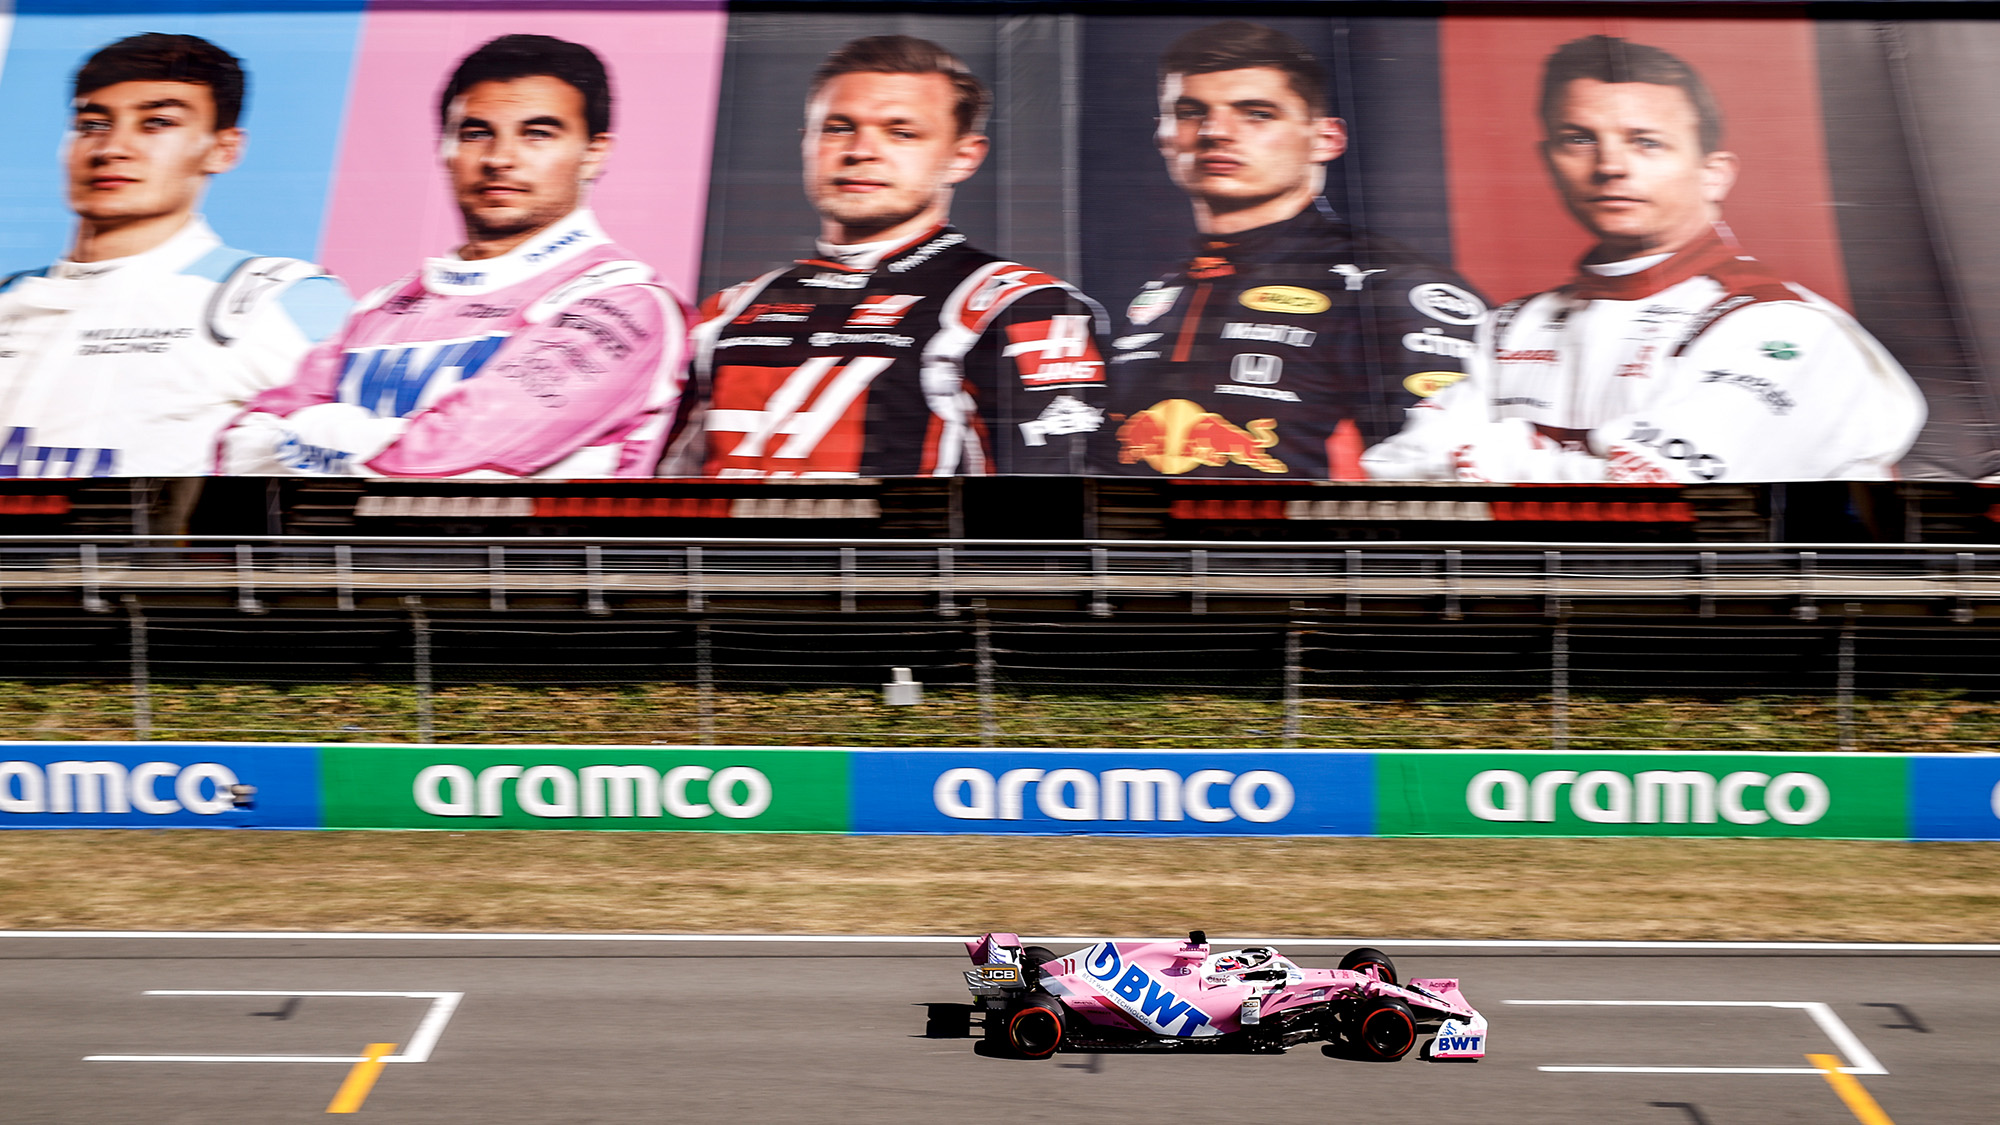 Sergio Perez during drives past images of 2020 F1 drivers in the grandstands during qualifying for the F1 Spanish Grand Prix